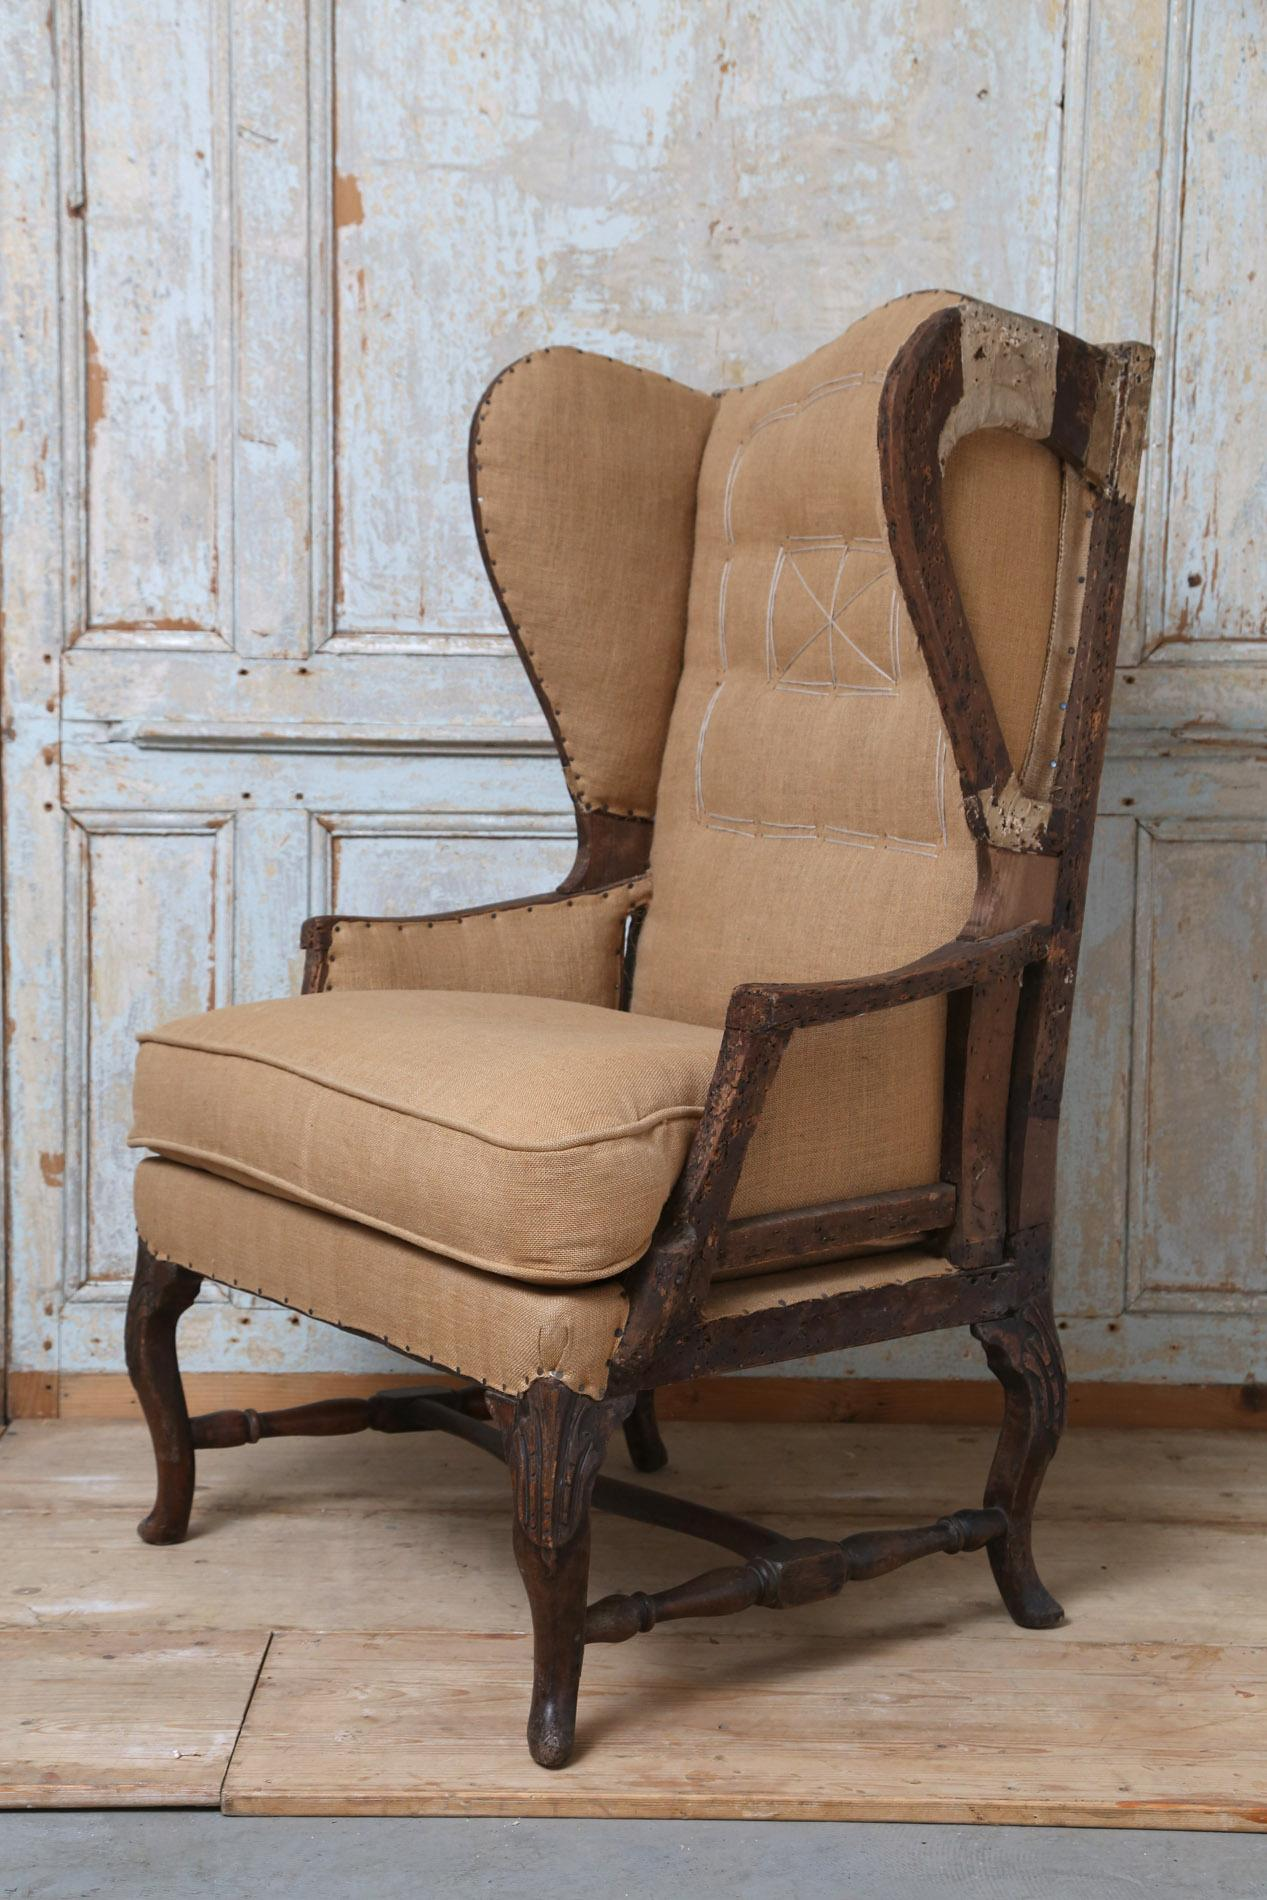 Early 19thc French Deconstructed High Wing Back Chair